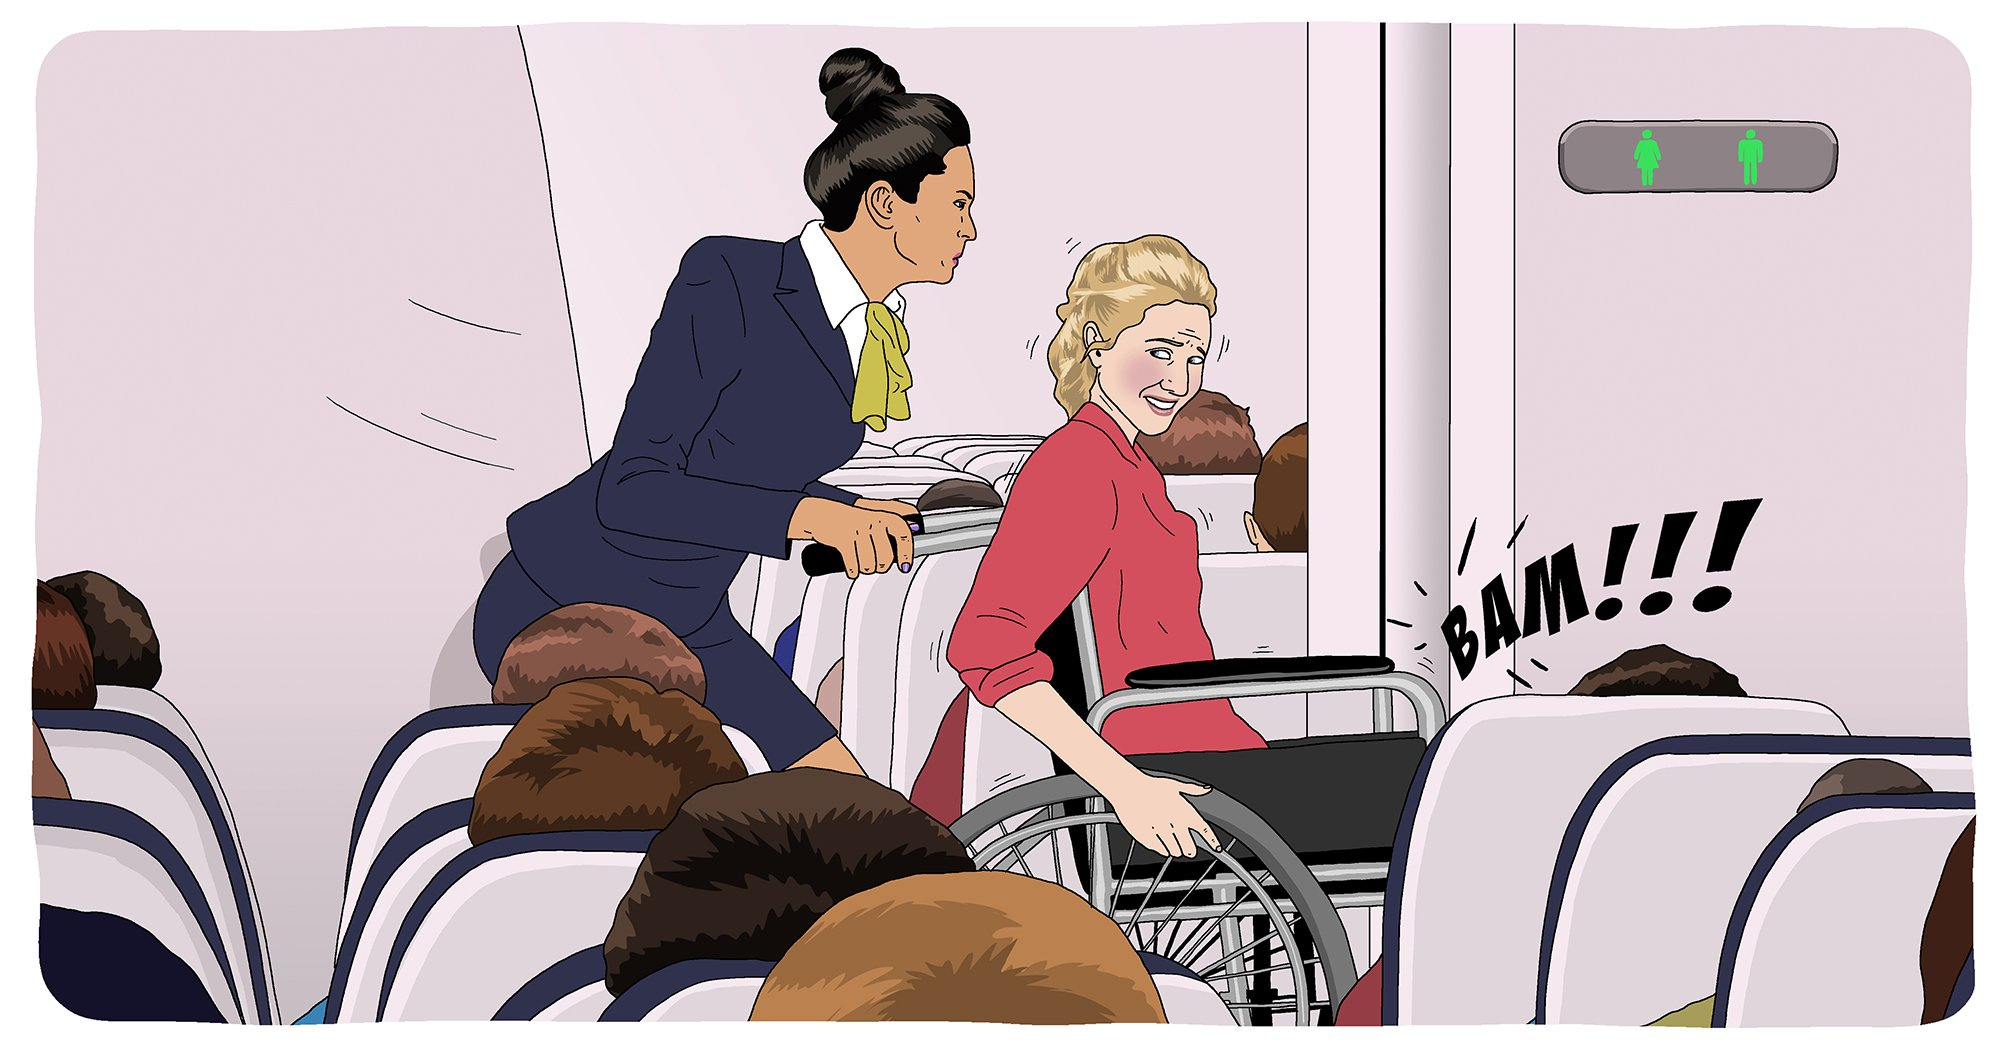 As a disabled person I shouldn't have to wear a nappy if I want to travel by plane